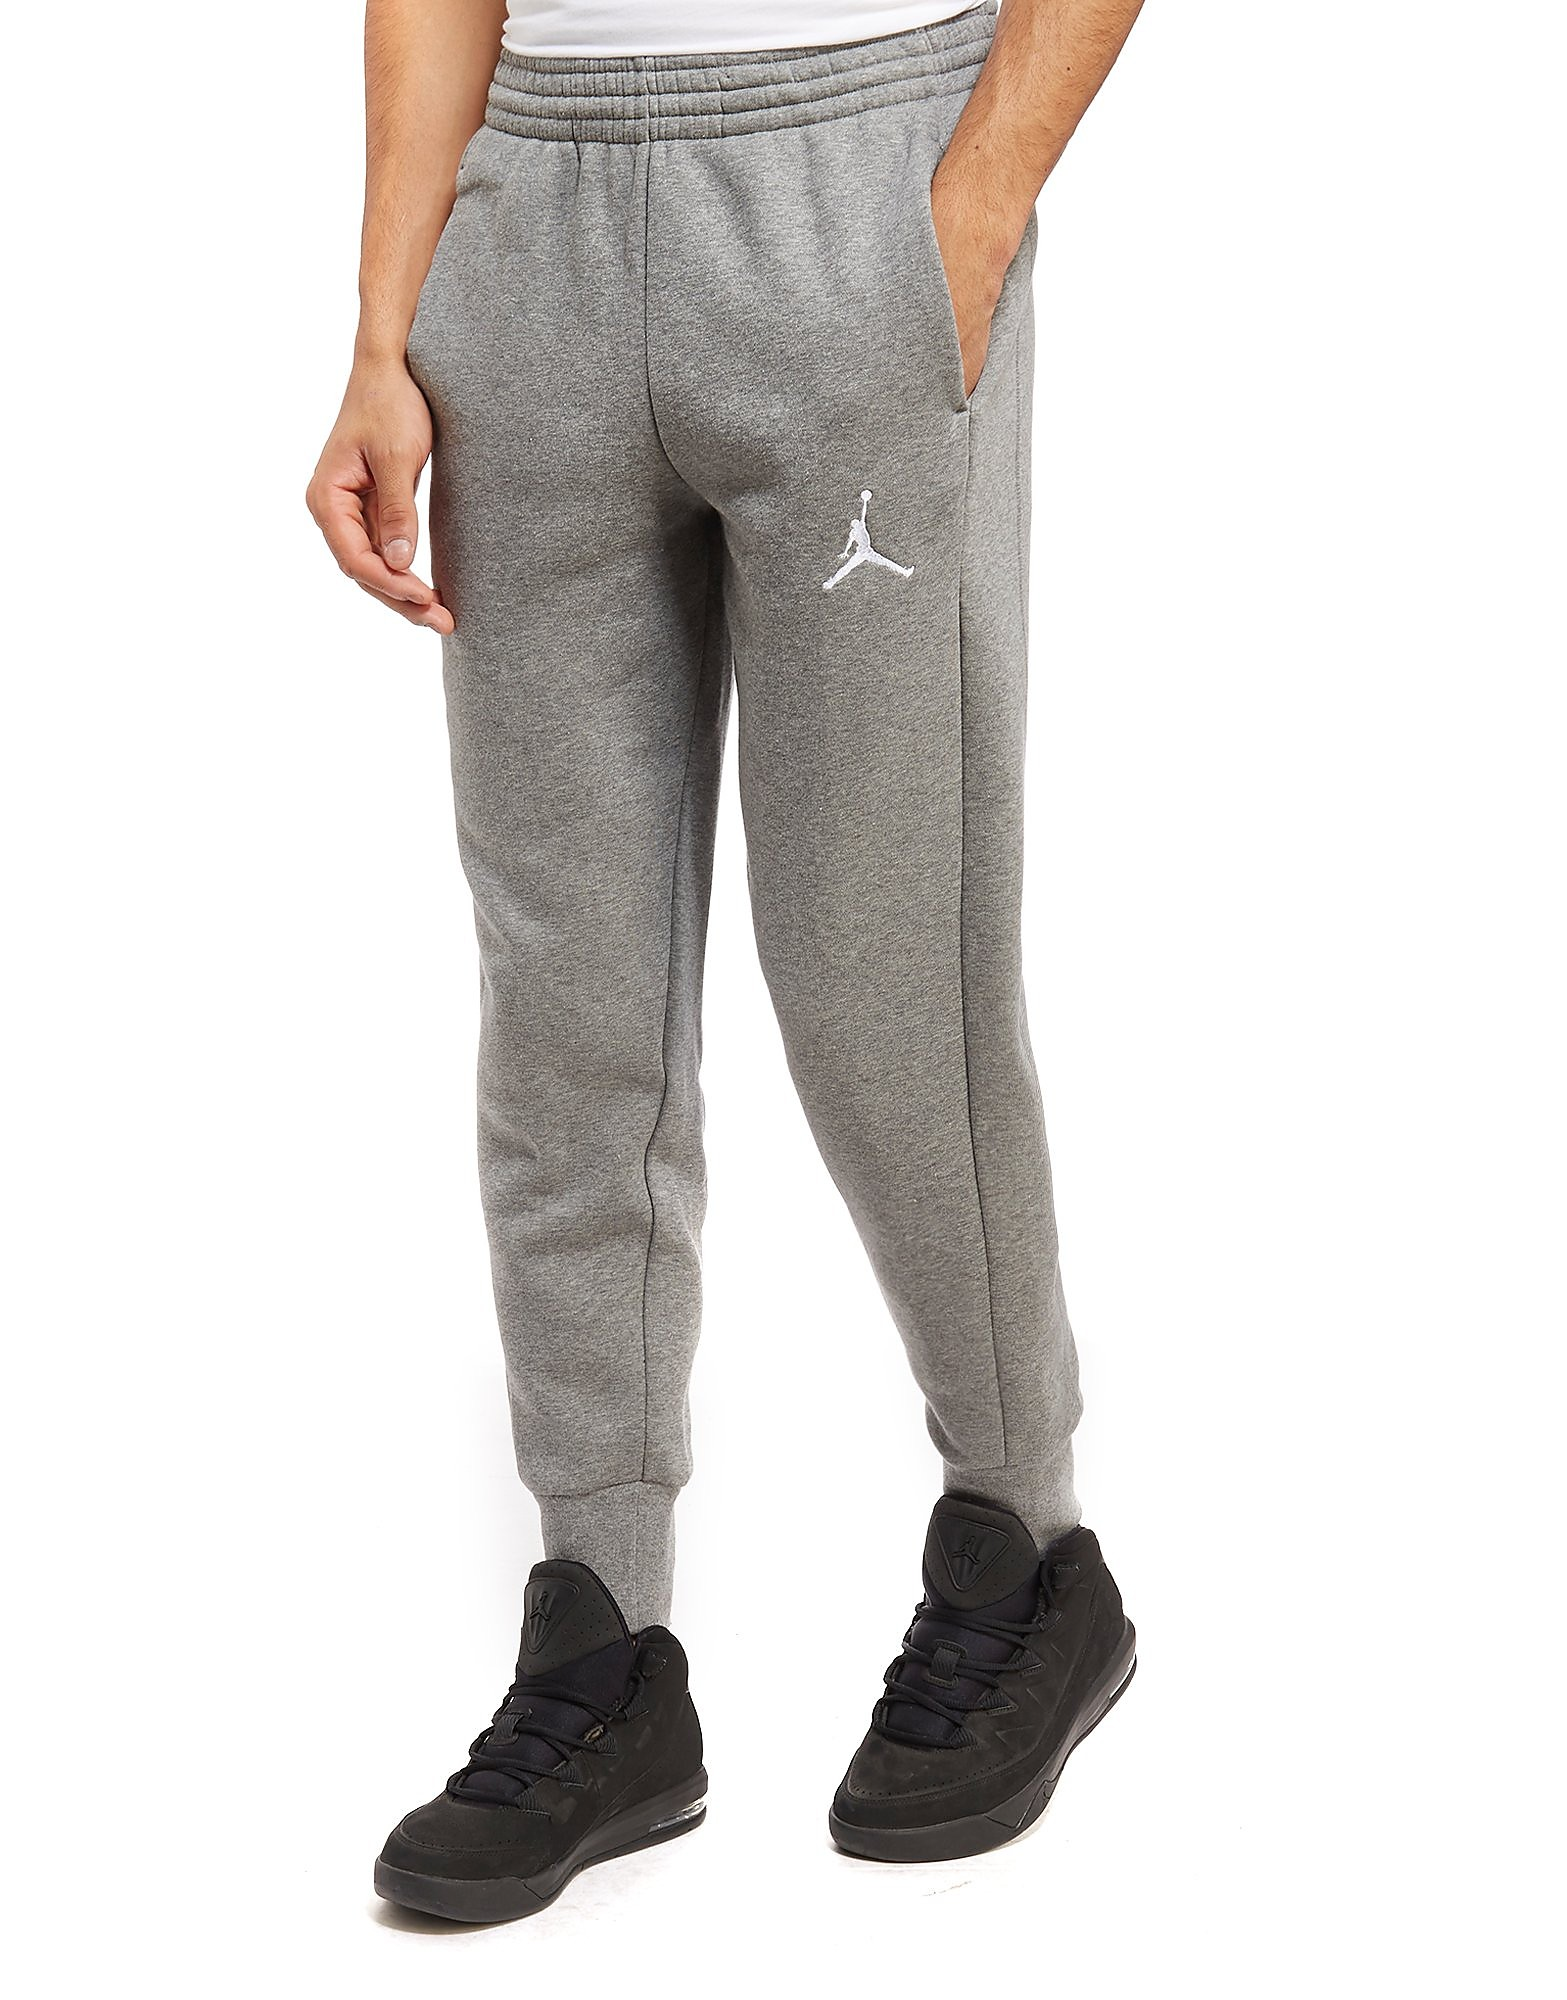 Jordan Legend Flight Pants